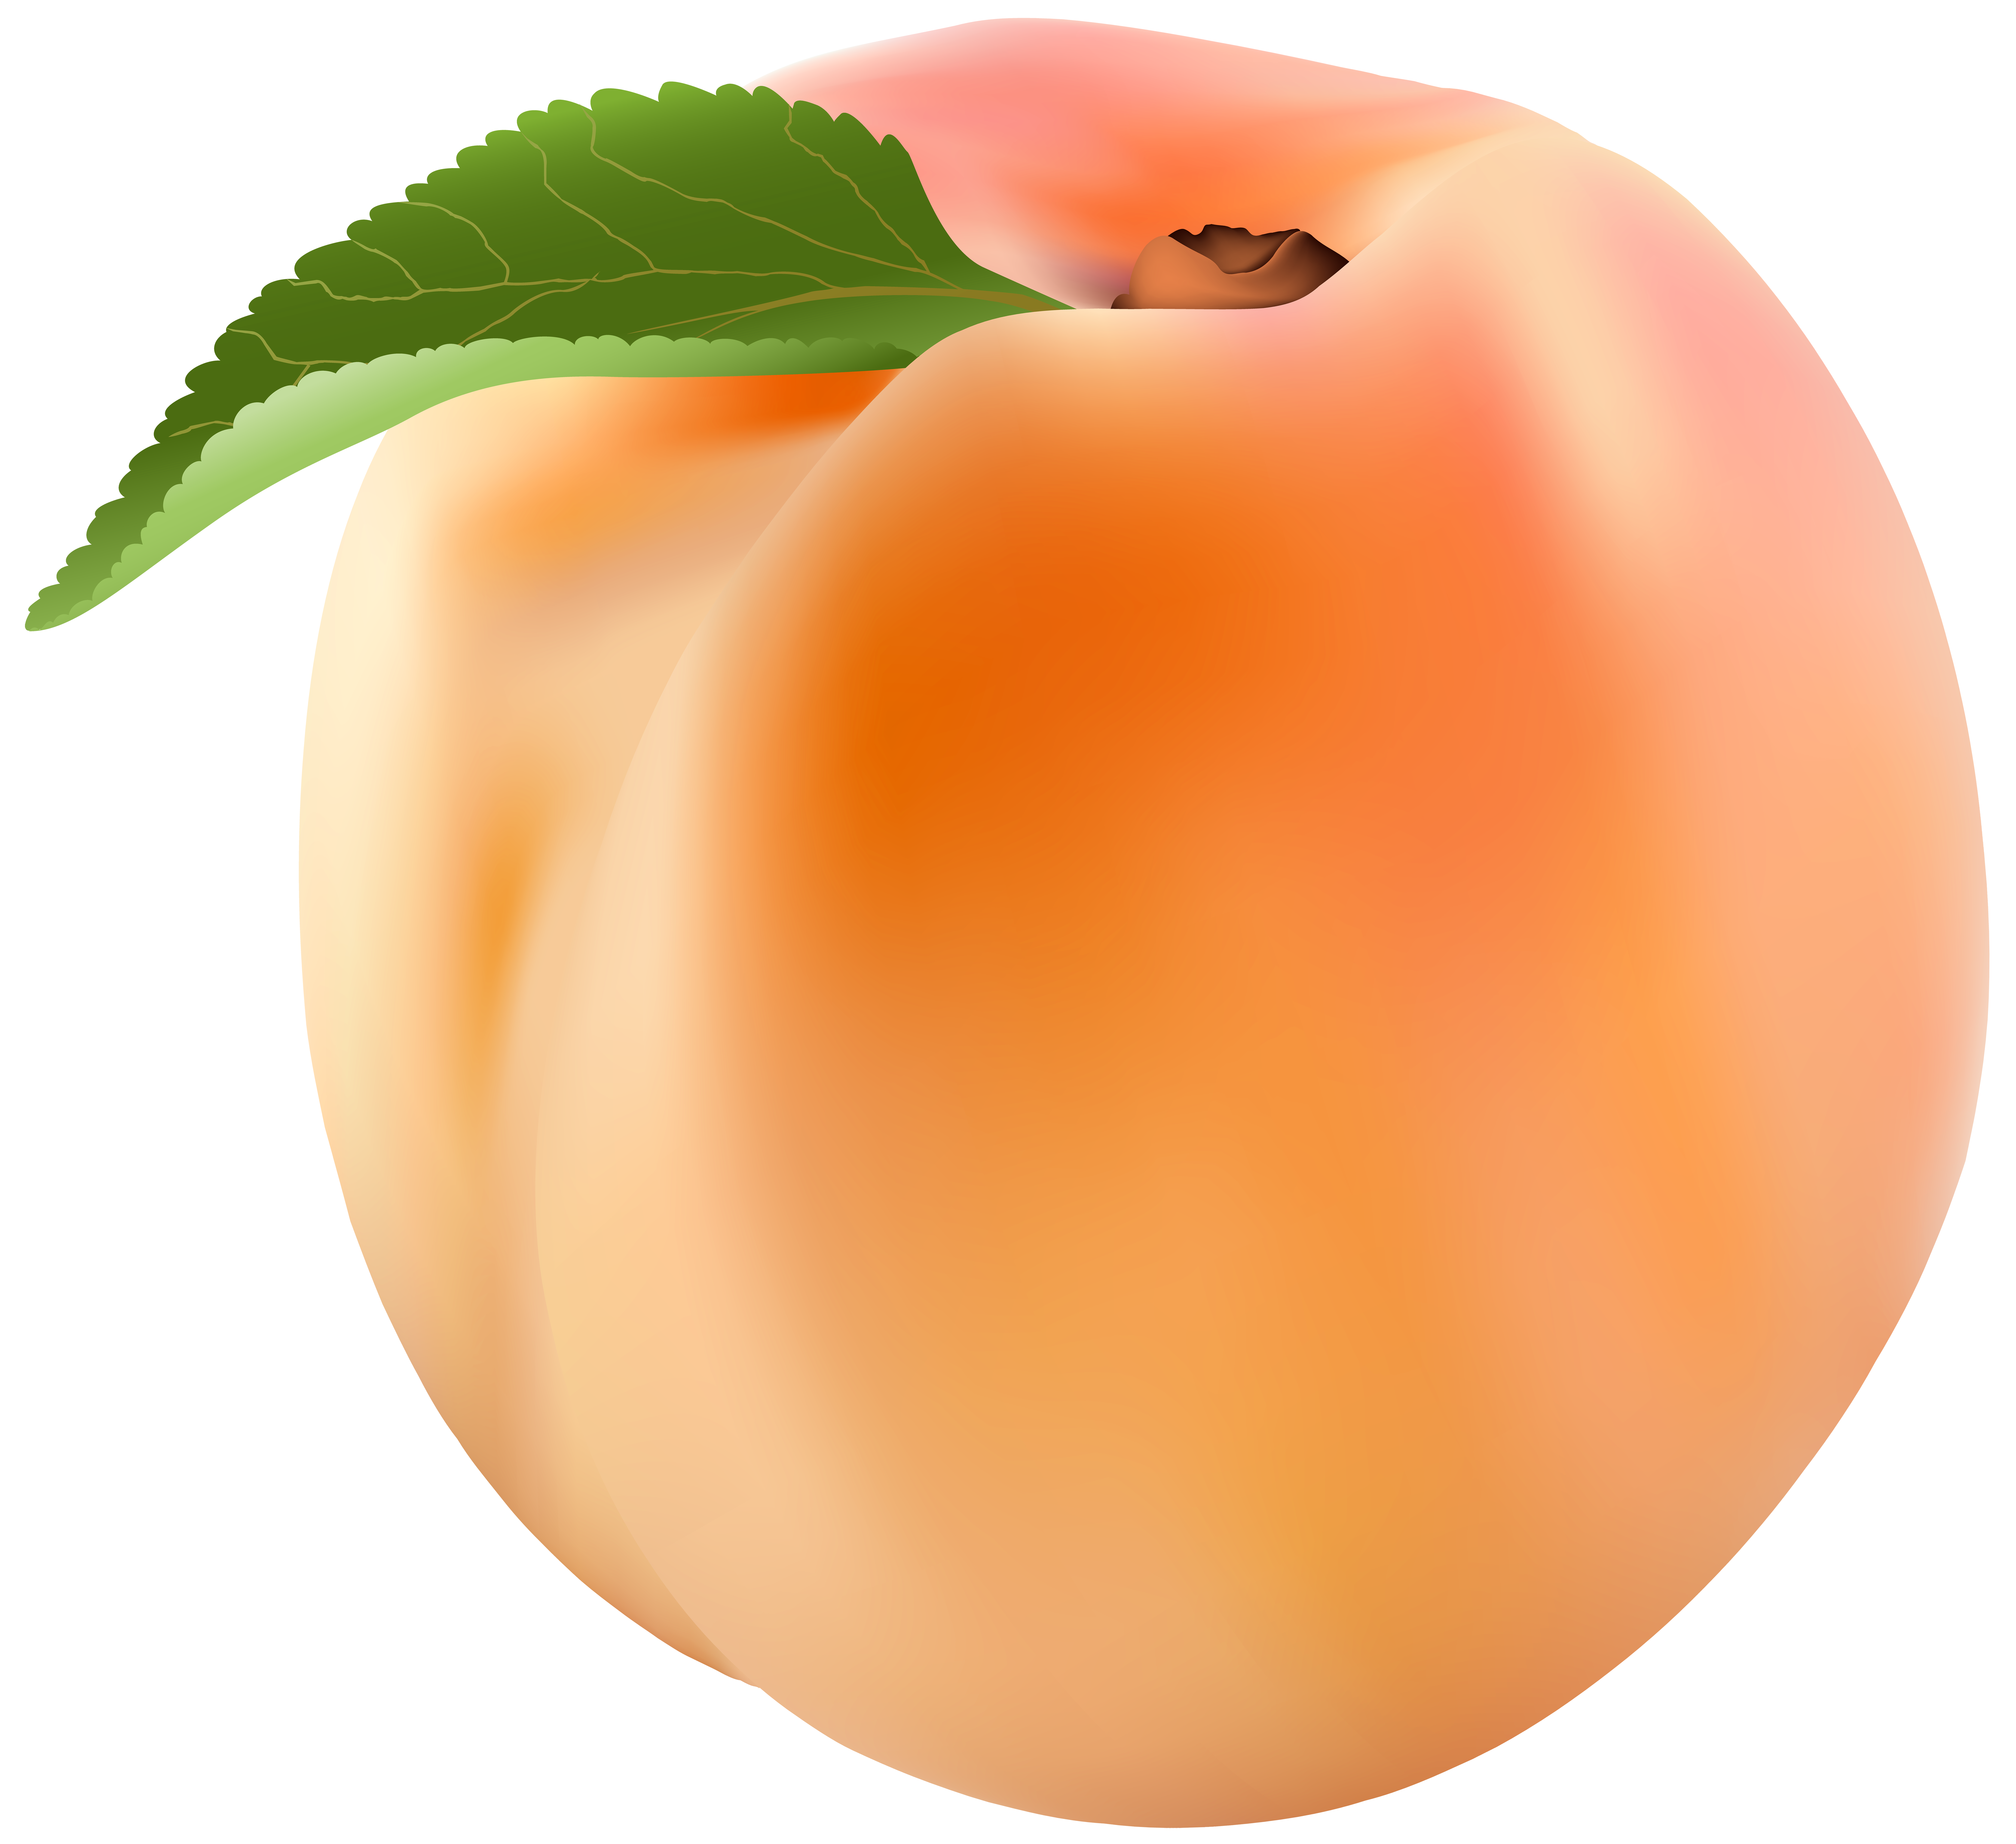 graphic library download Png clip art image. Peach clipart